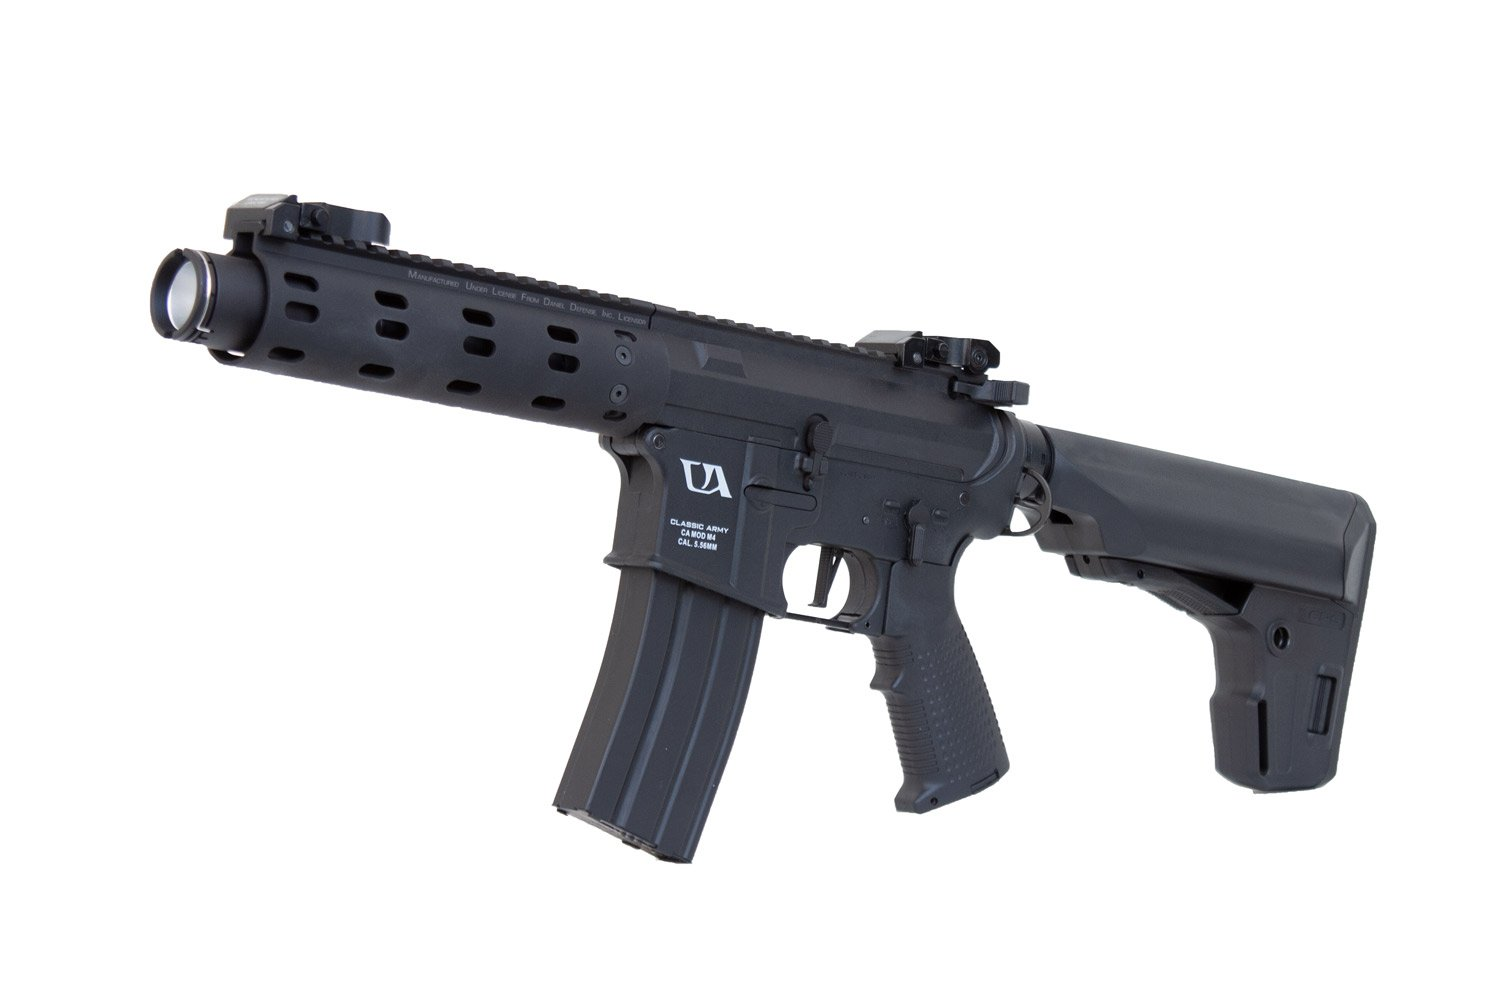 Airsoft Gi Custom Classic Army Ecs Skirmish Mfr Airsoft Rifle Black